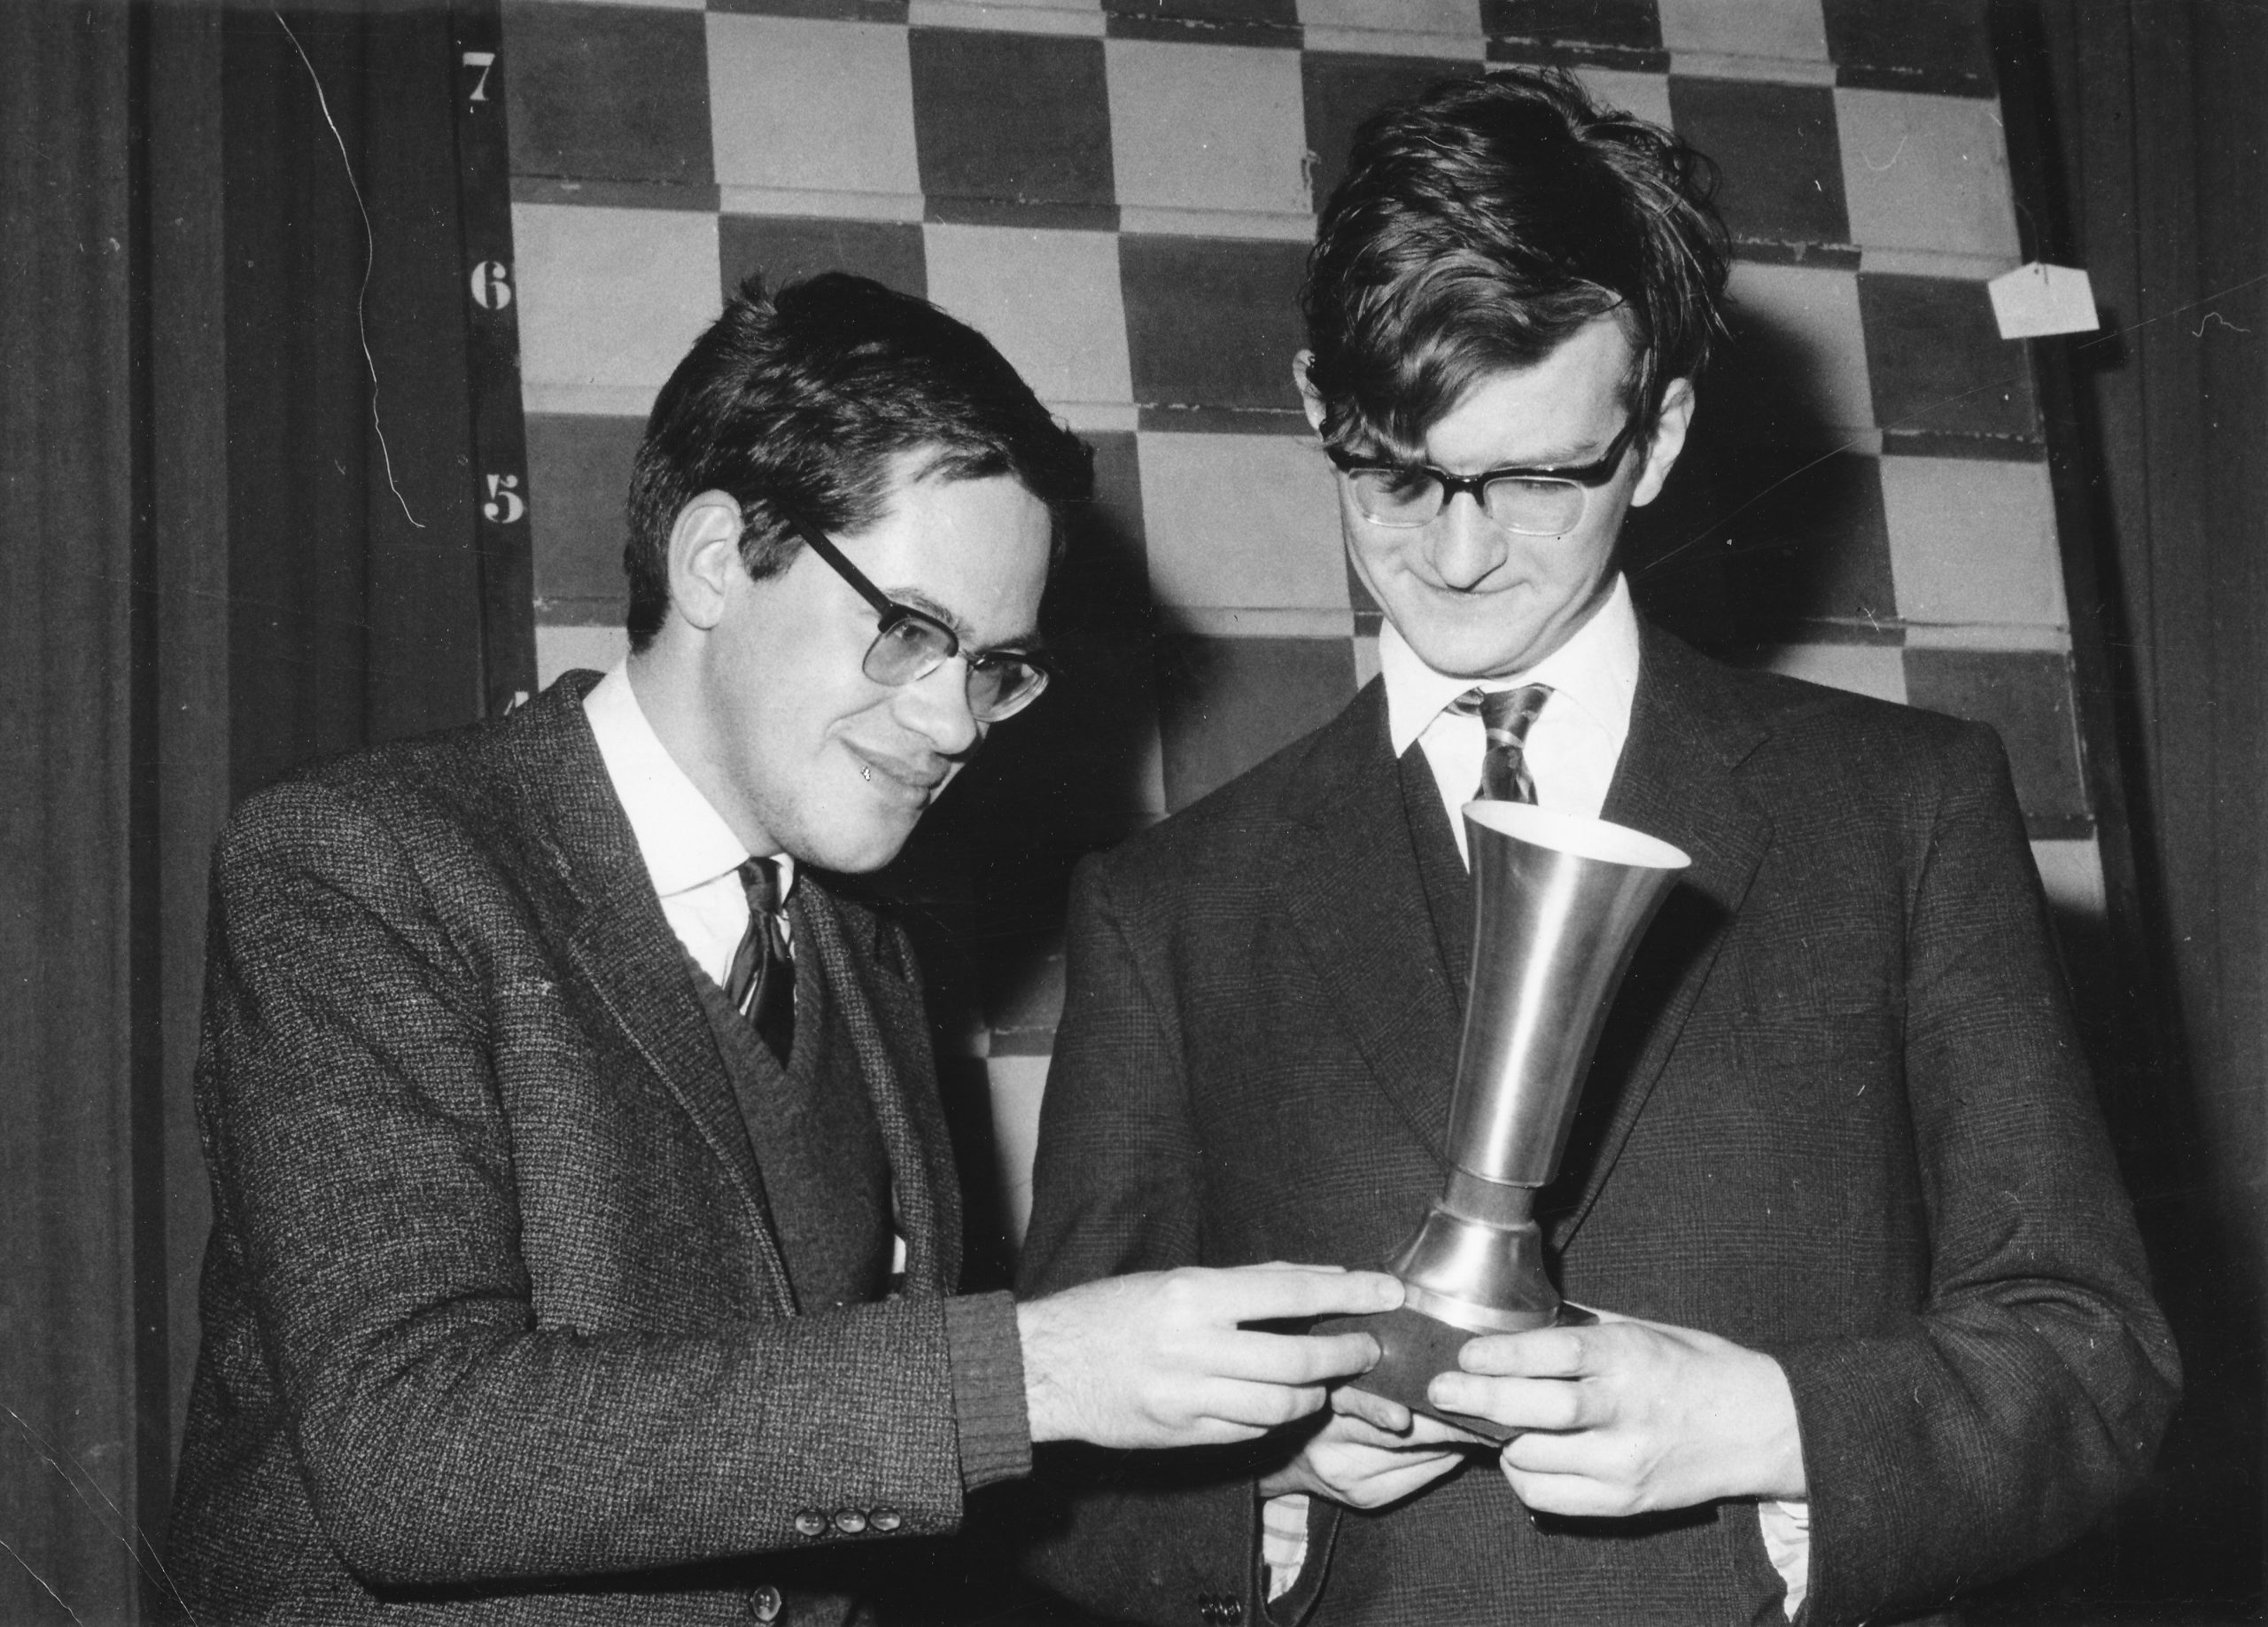 Hans Ree (left) and Andrew Whiteley (right) examine the European Junior Trophy for 1965/6 in which they tied for first.